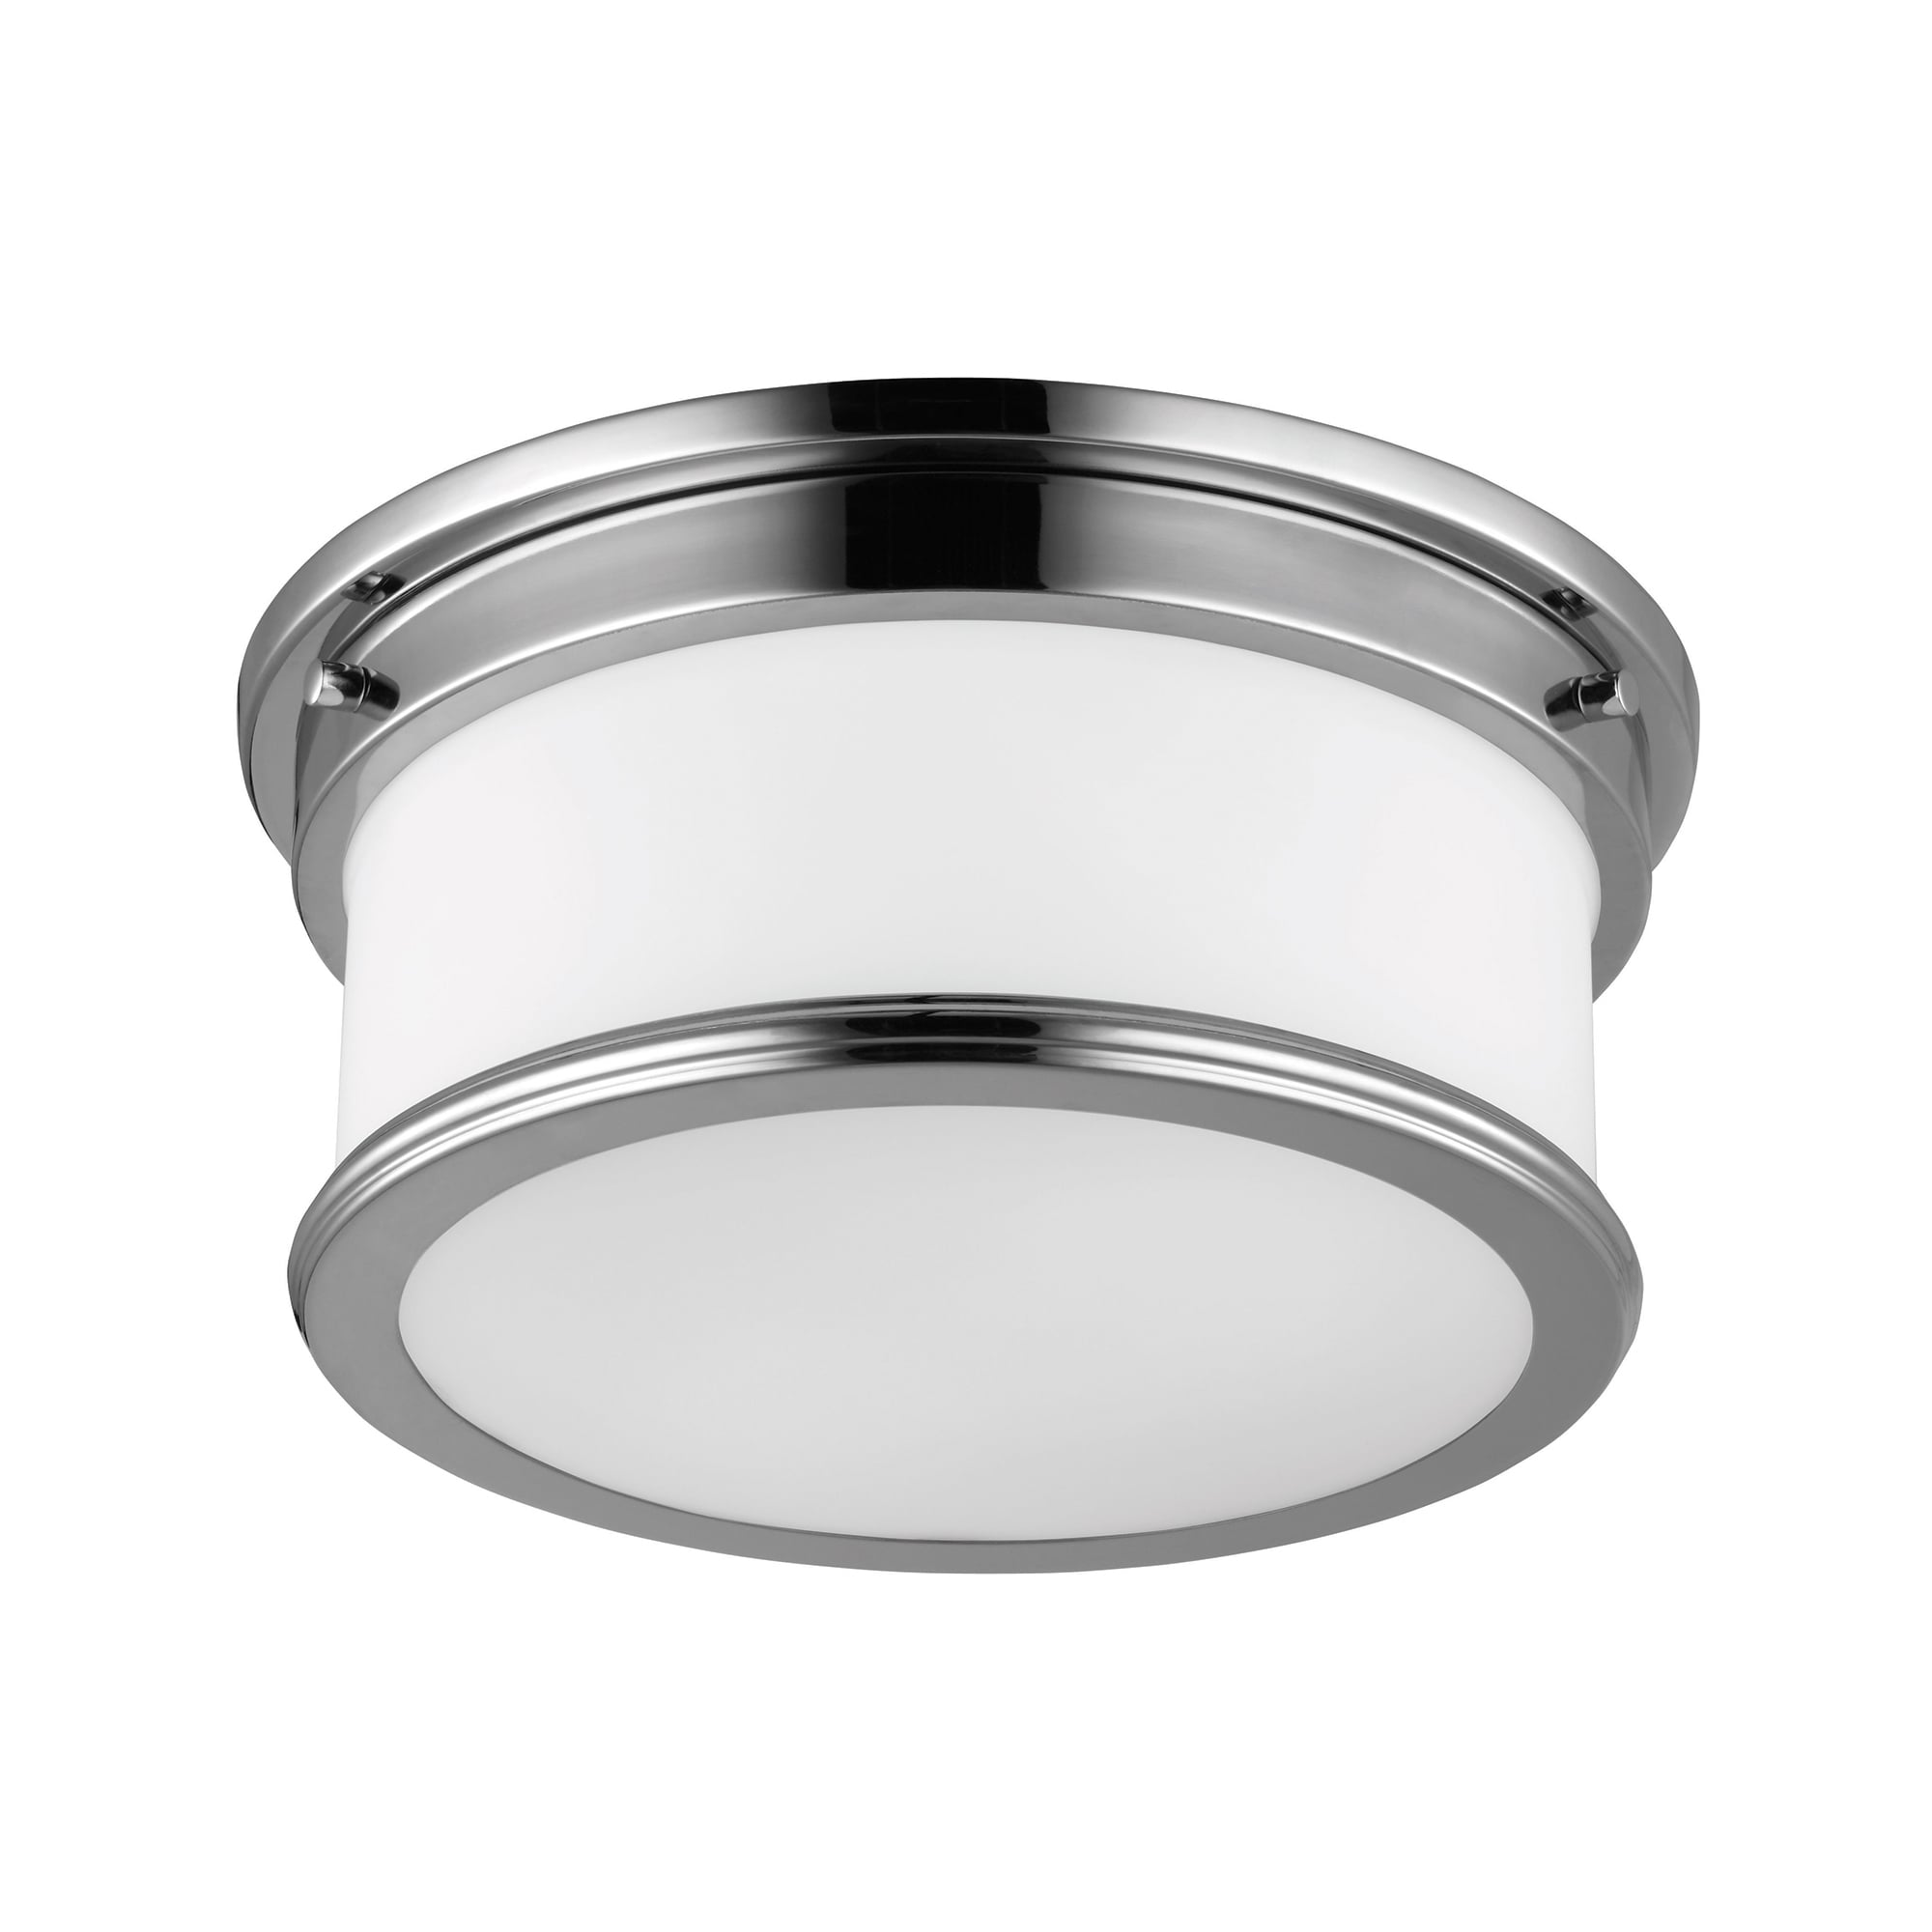 Payne F Bath Bathroom Ceiling Light